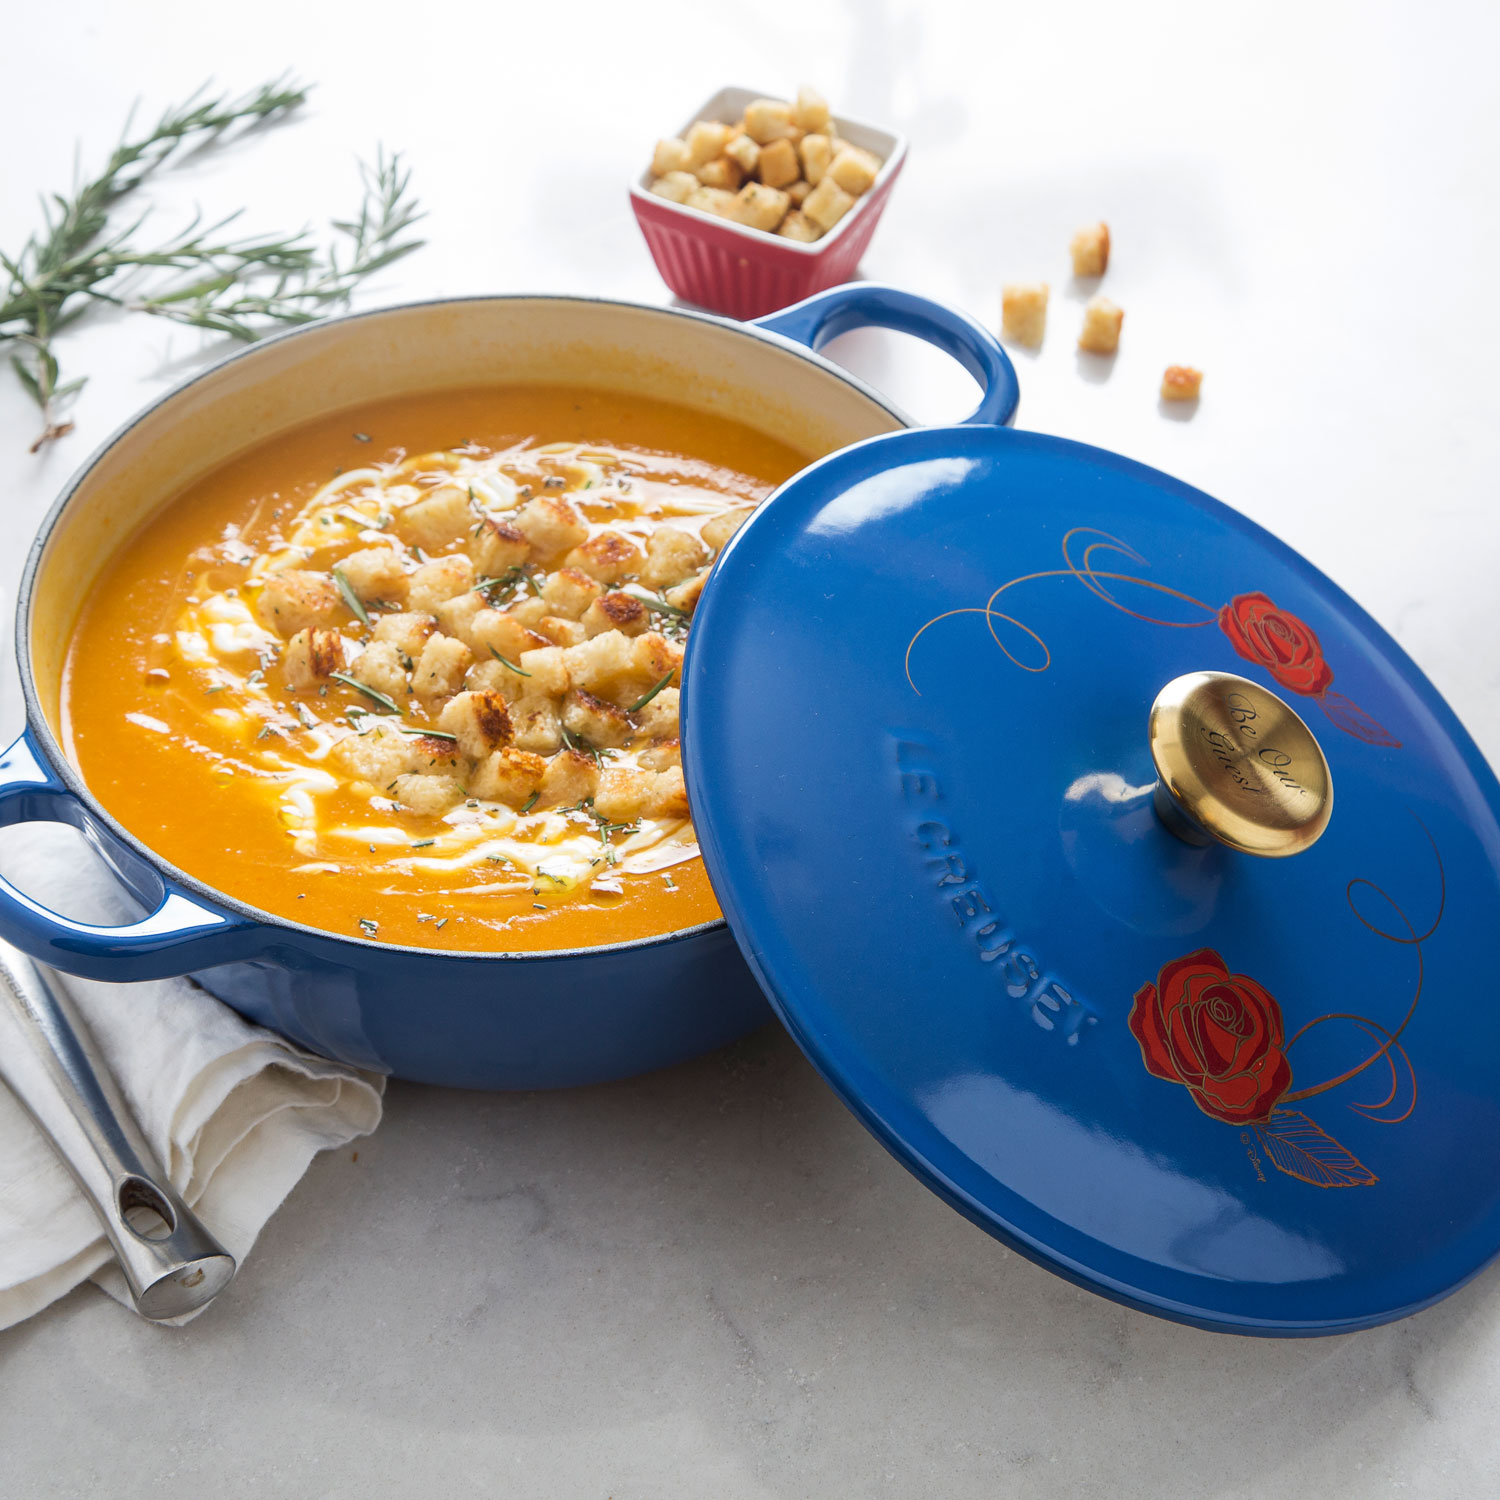 Splurge gifts for foodies who like to cook and eat it all: The Disney x Le Creuset Beauty and The Beast soup pot (hurry! limited quantities!) | Cool Mom Eats holiday gift guide 2017